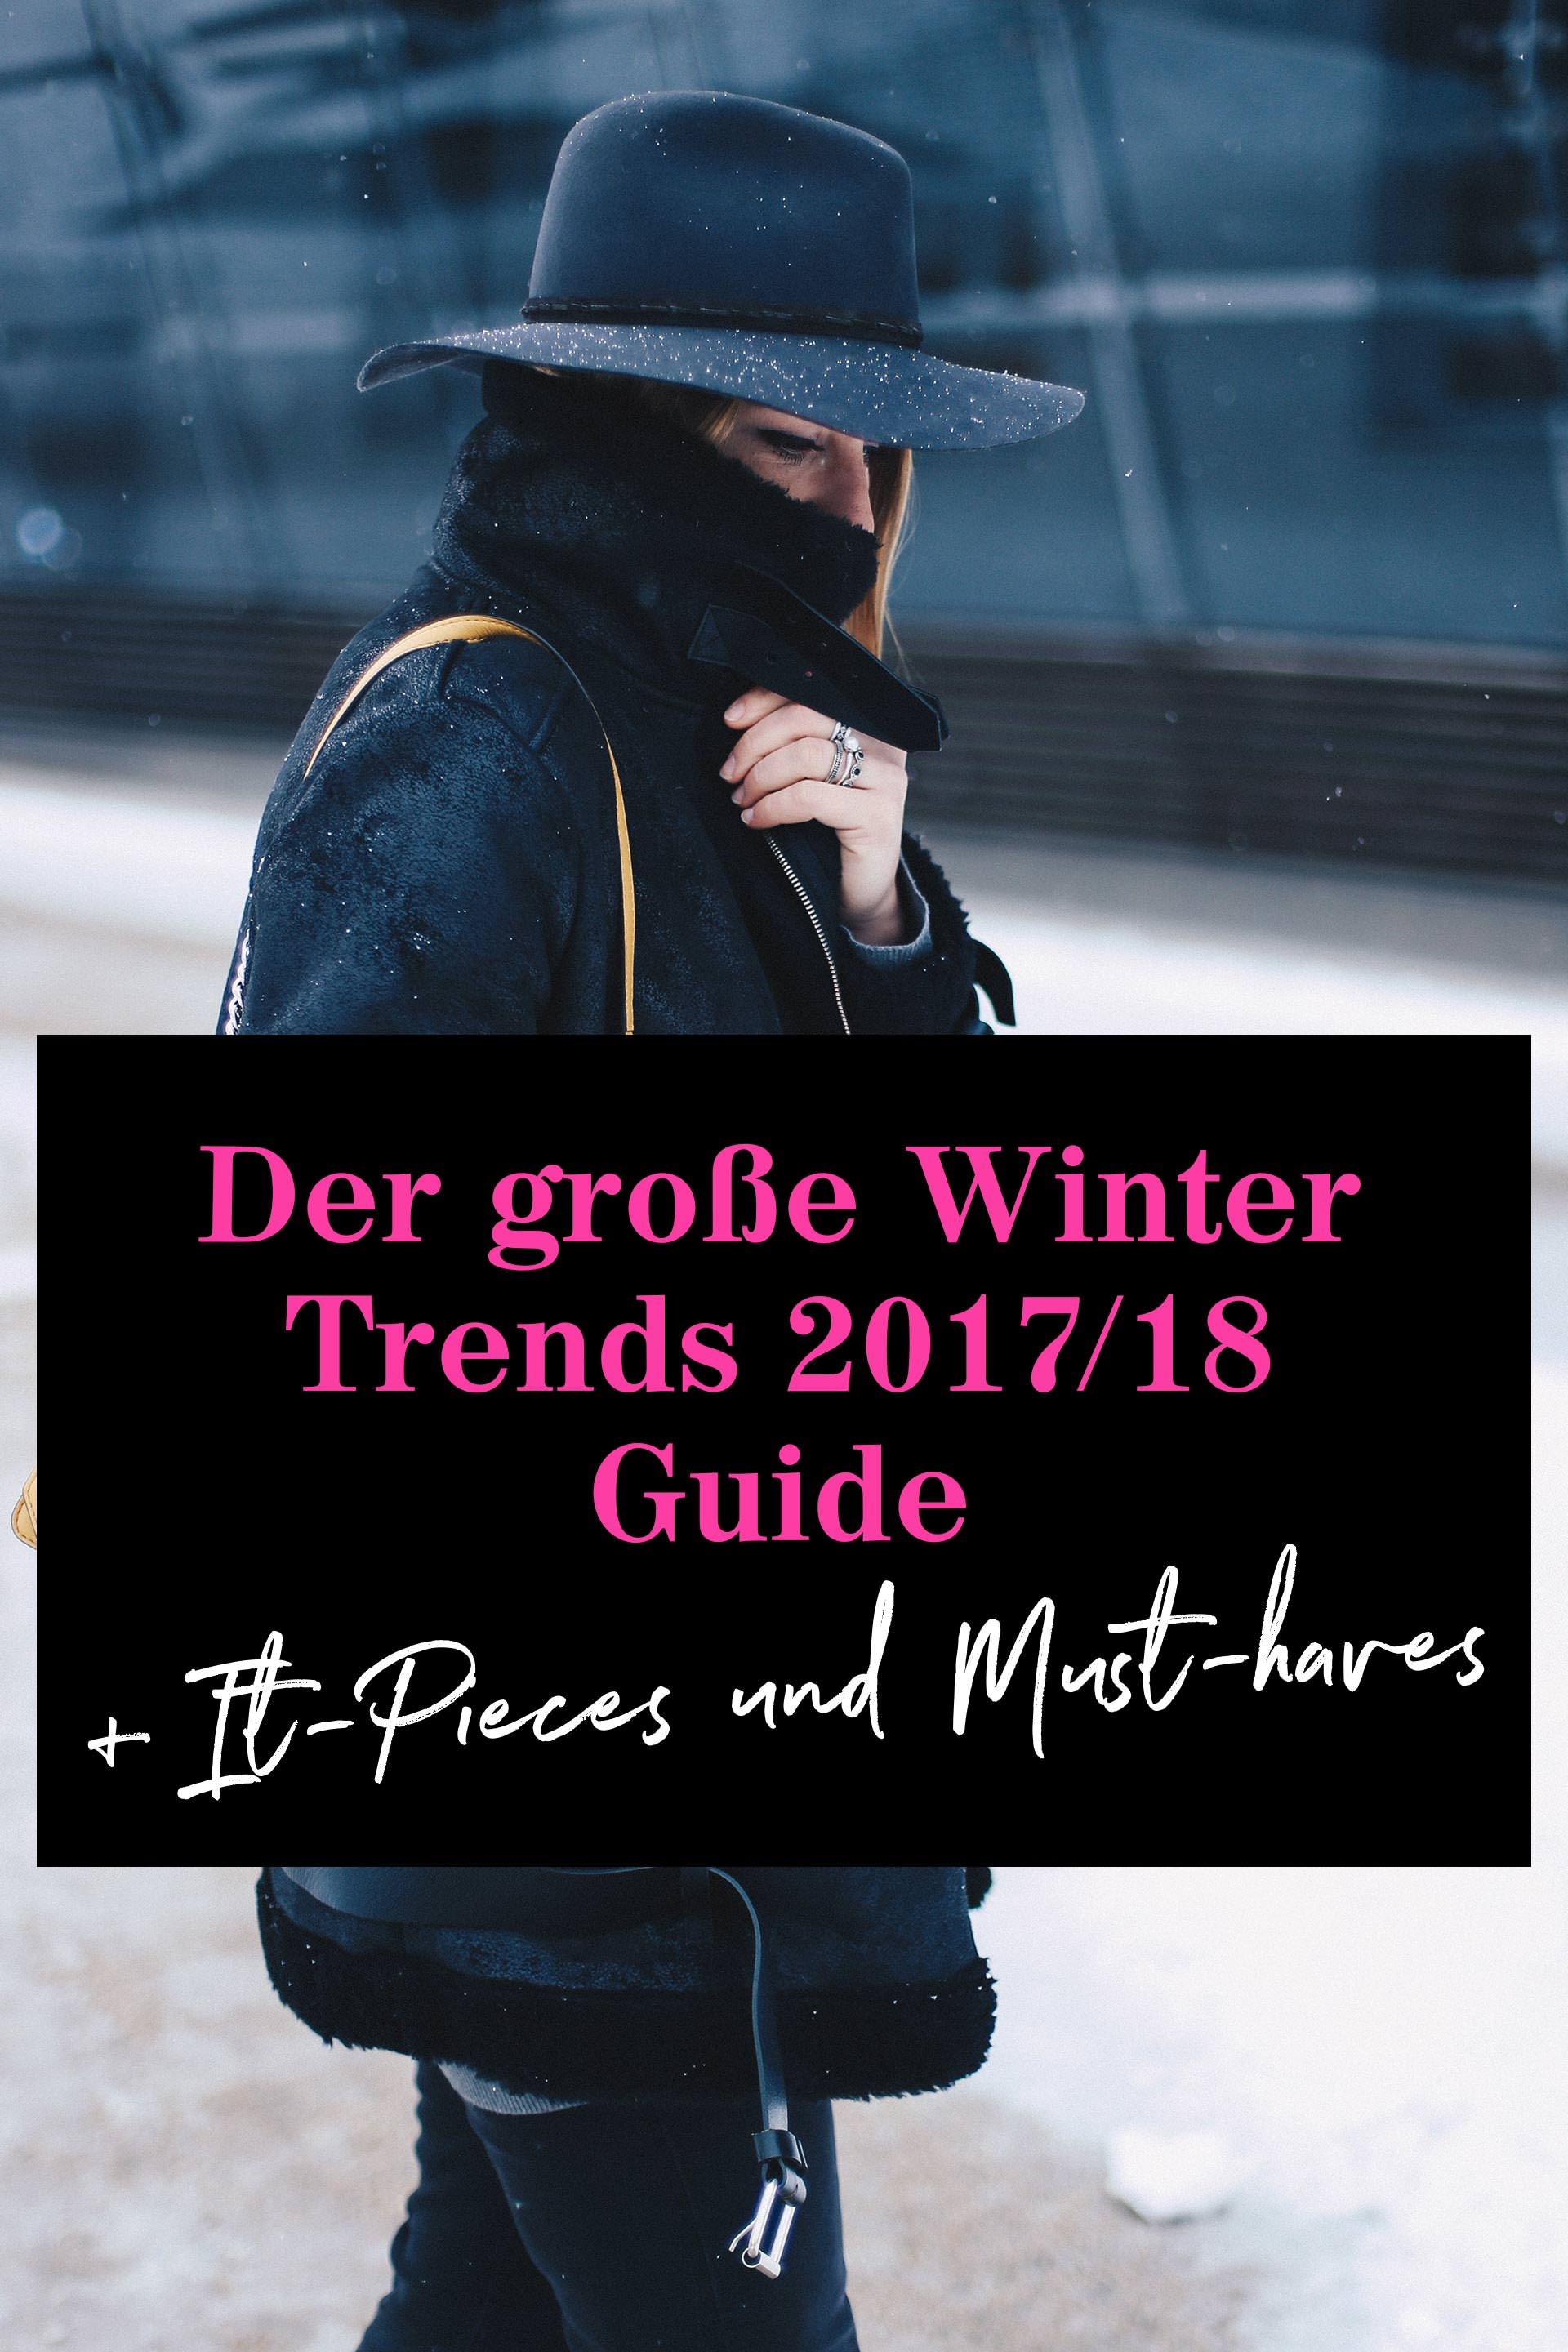 Winter Trends 2017 2018 auf einen Blick, Modetrends im Winter, Must Haves und It Pieces, Fashion Blog, Modeblog, Shopping Guide, www.whoismocca.com